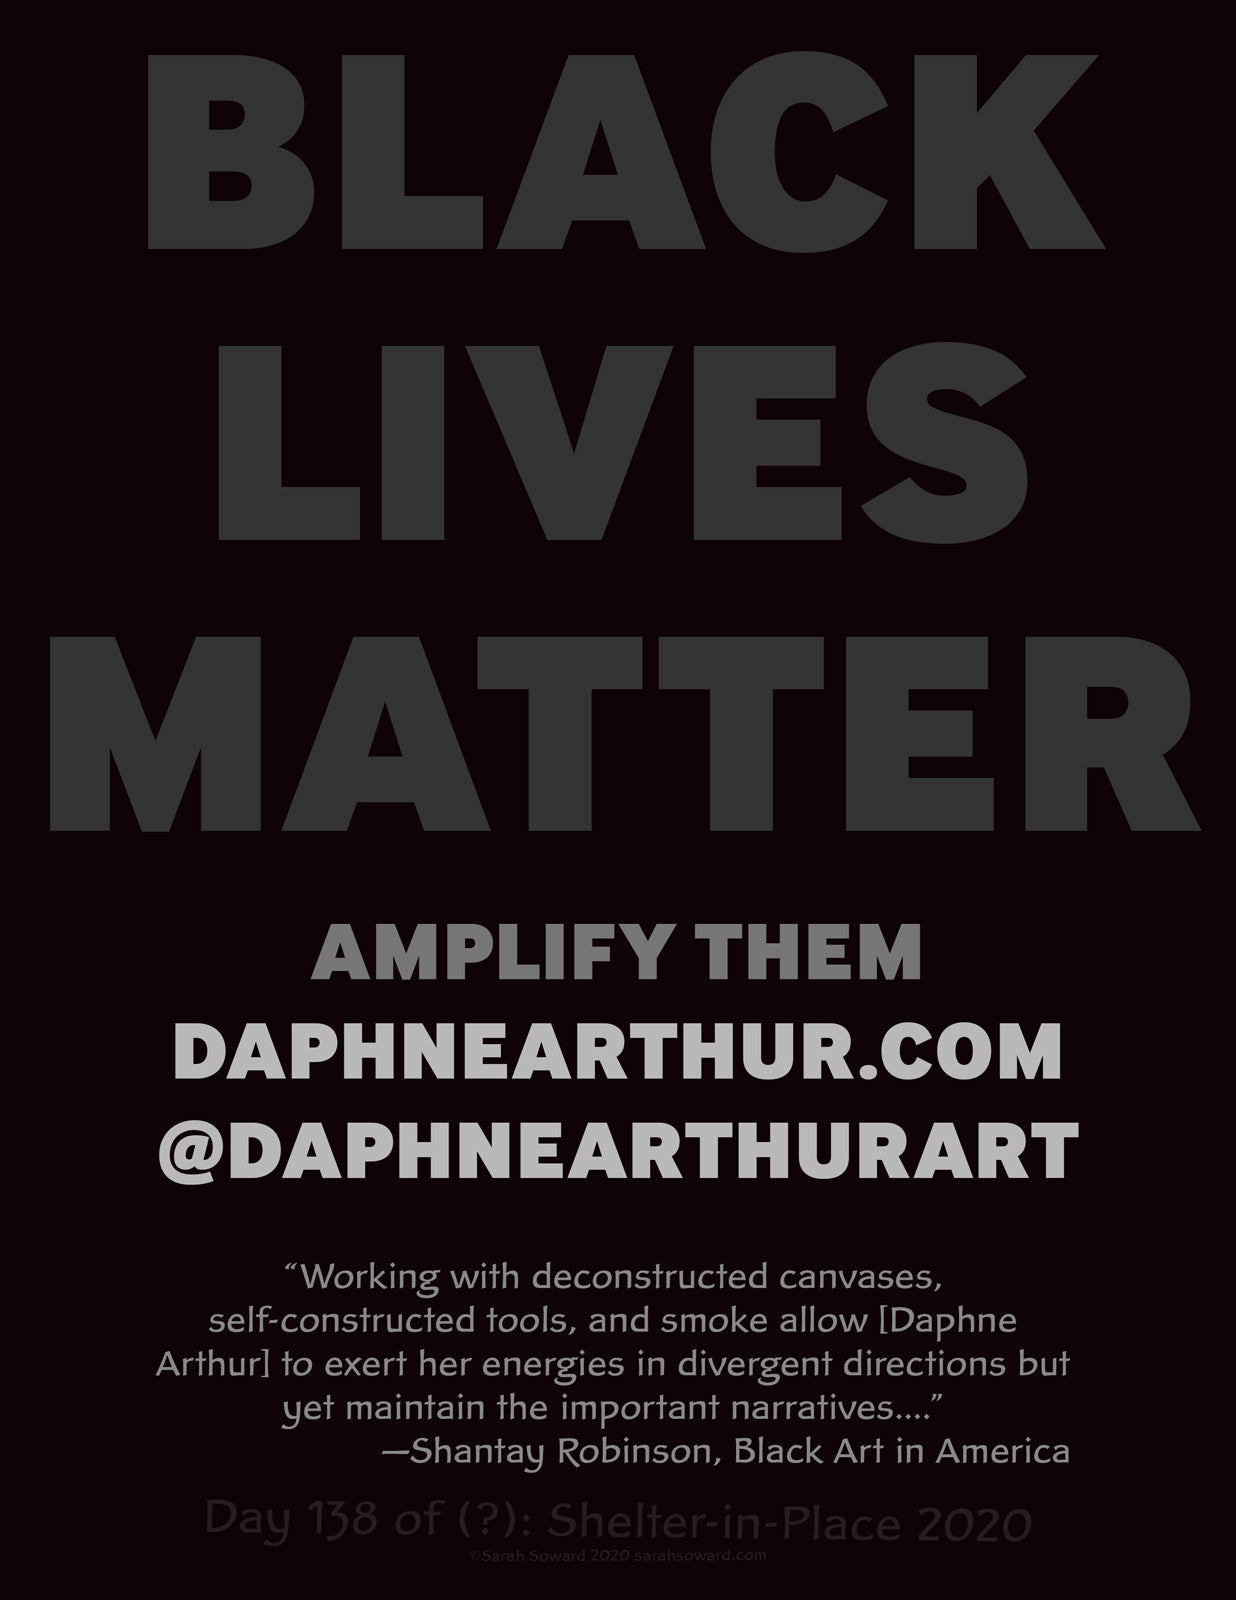 "This is a text based image. The text on the image reads BLACK LIVES MATTER AMPLIFY THEM daphnearthur.com @daphnearthurart ""Working with deconstructed canvases, self-constructed tools, and smoke allow [Daphne Arthur] to exert her energies in divergent directions but yet maintain the important narratives...."" —Shantay Robinson, Black Art in America"